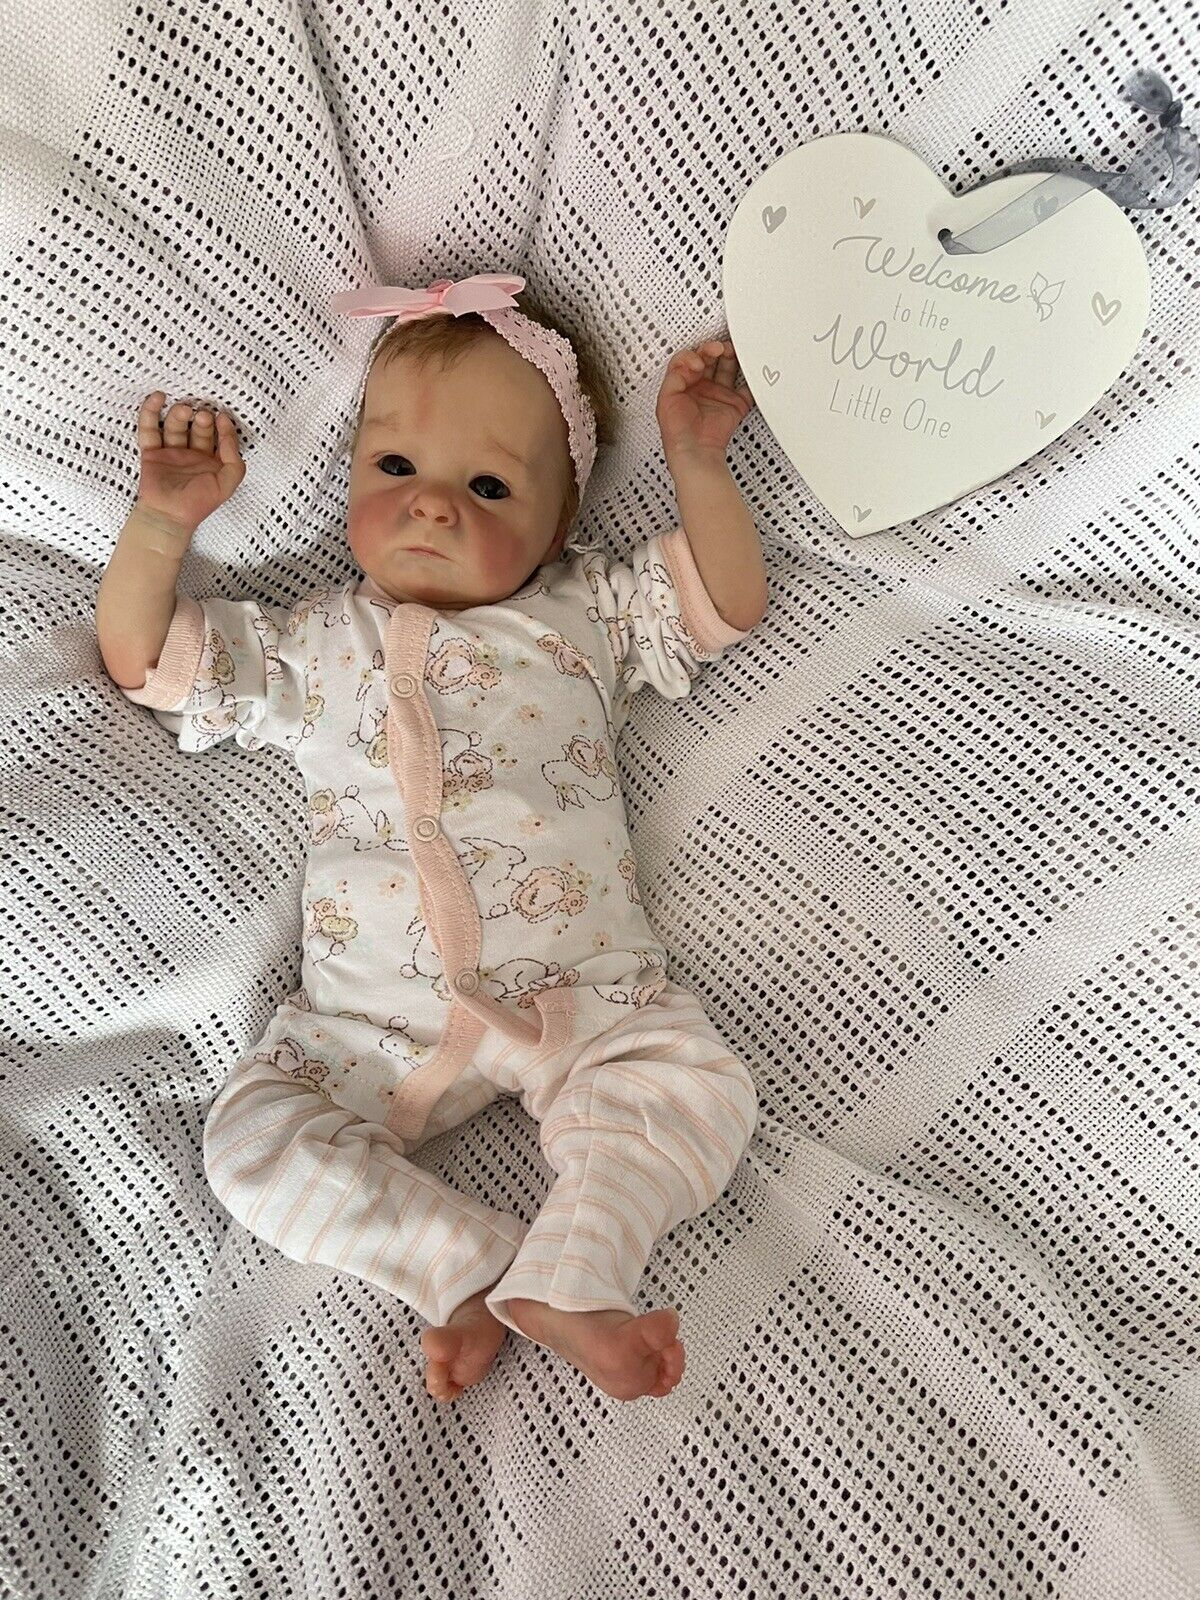 Tink Reborn Baby Girl Doll Sculpted By Bonnie Brown Painted By Genuine Uk Artist